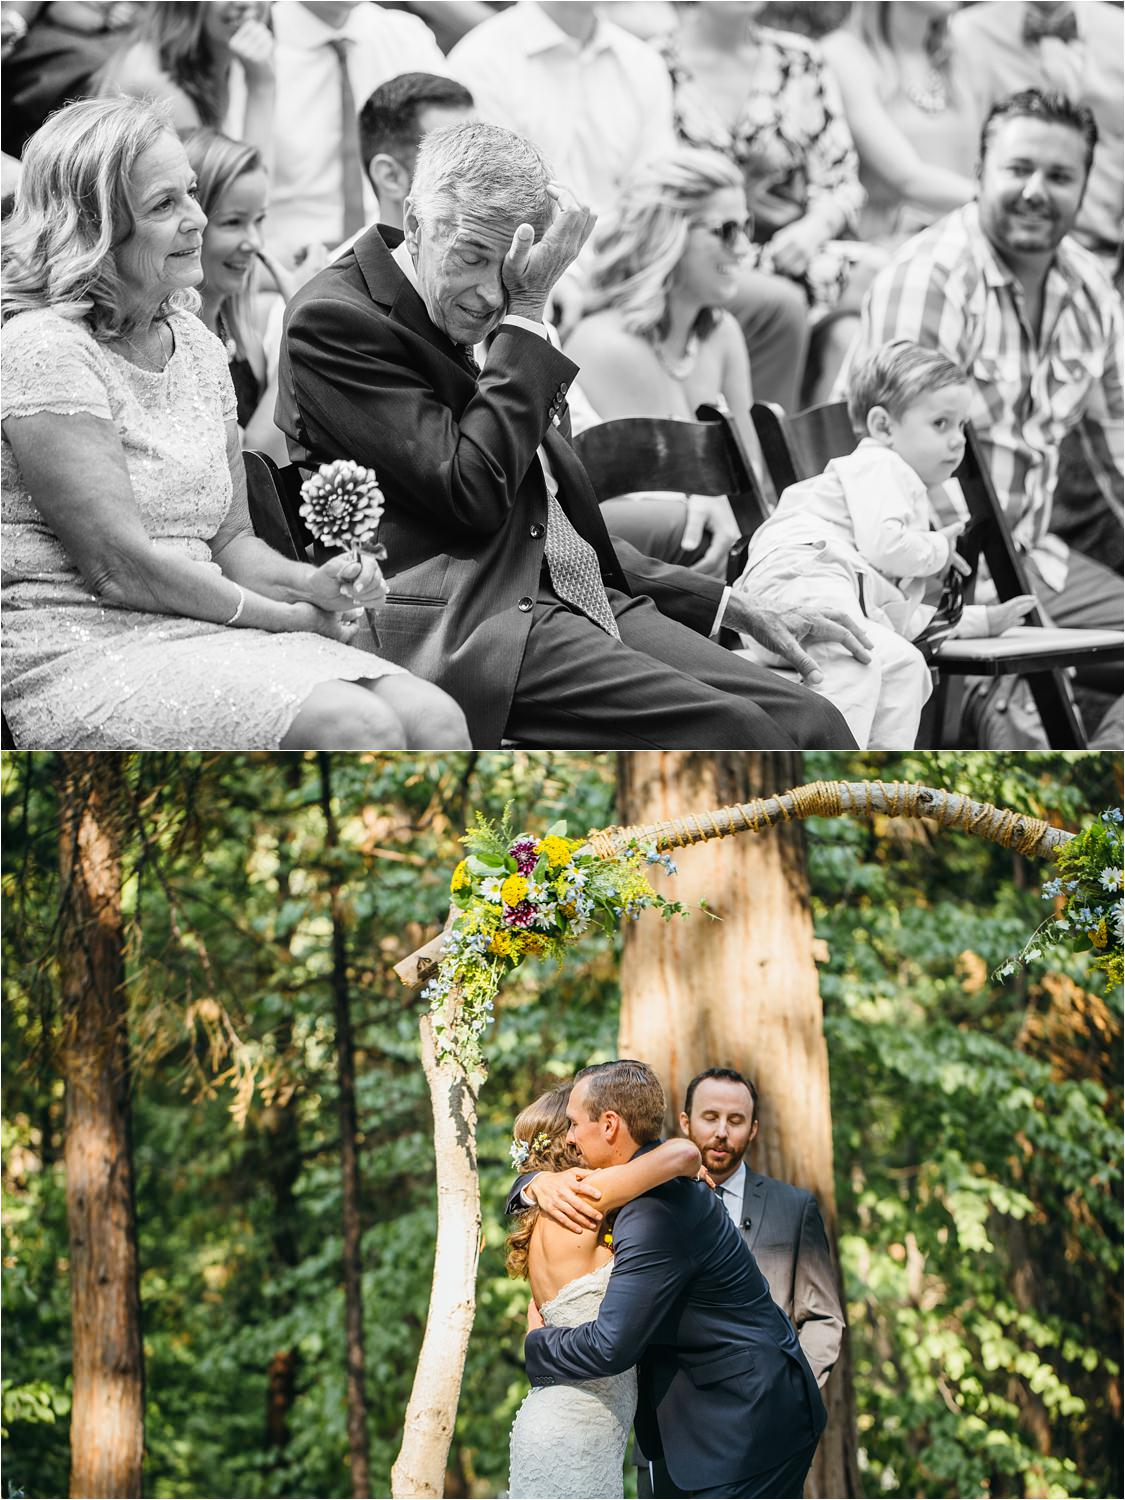 Lake Arrowhead Wedding - Lake Arrowhead Wedding Photographer - Southern California Photography - https://brittneyhannonphotography.com